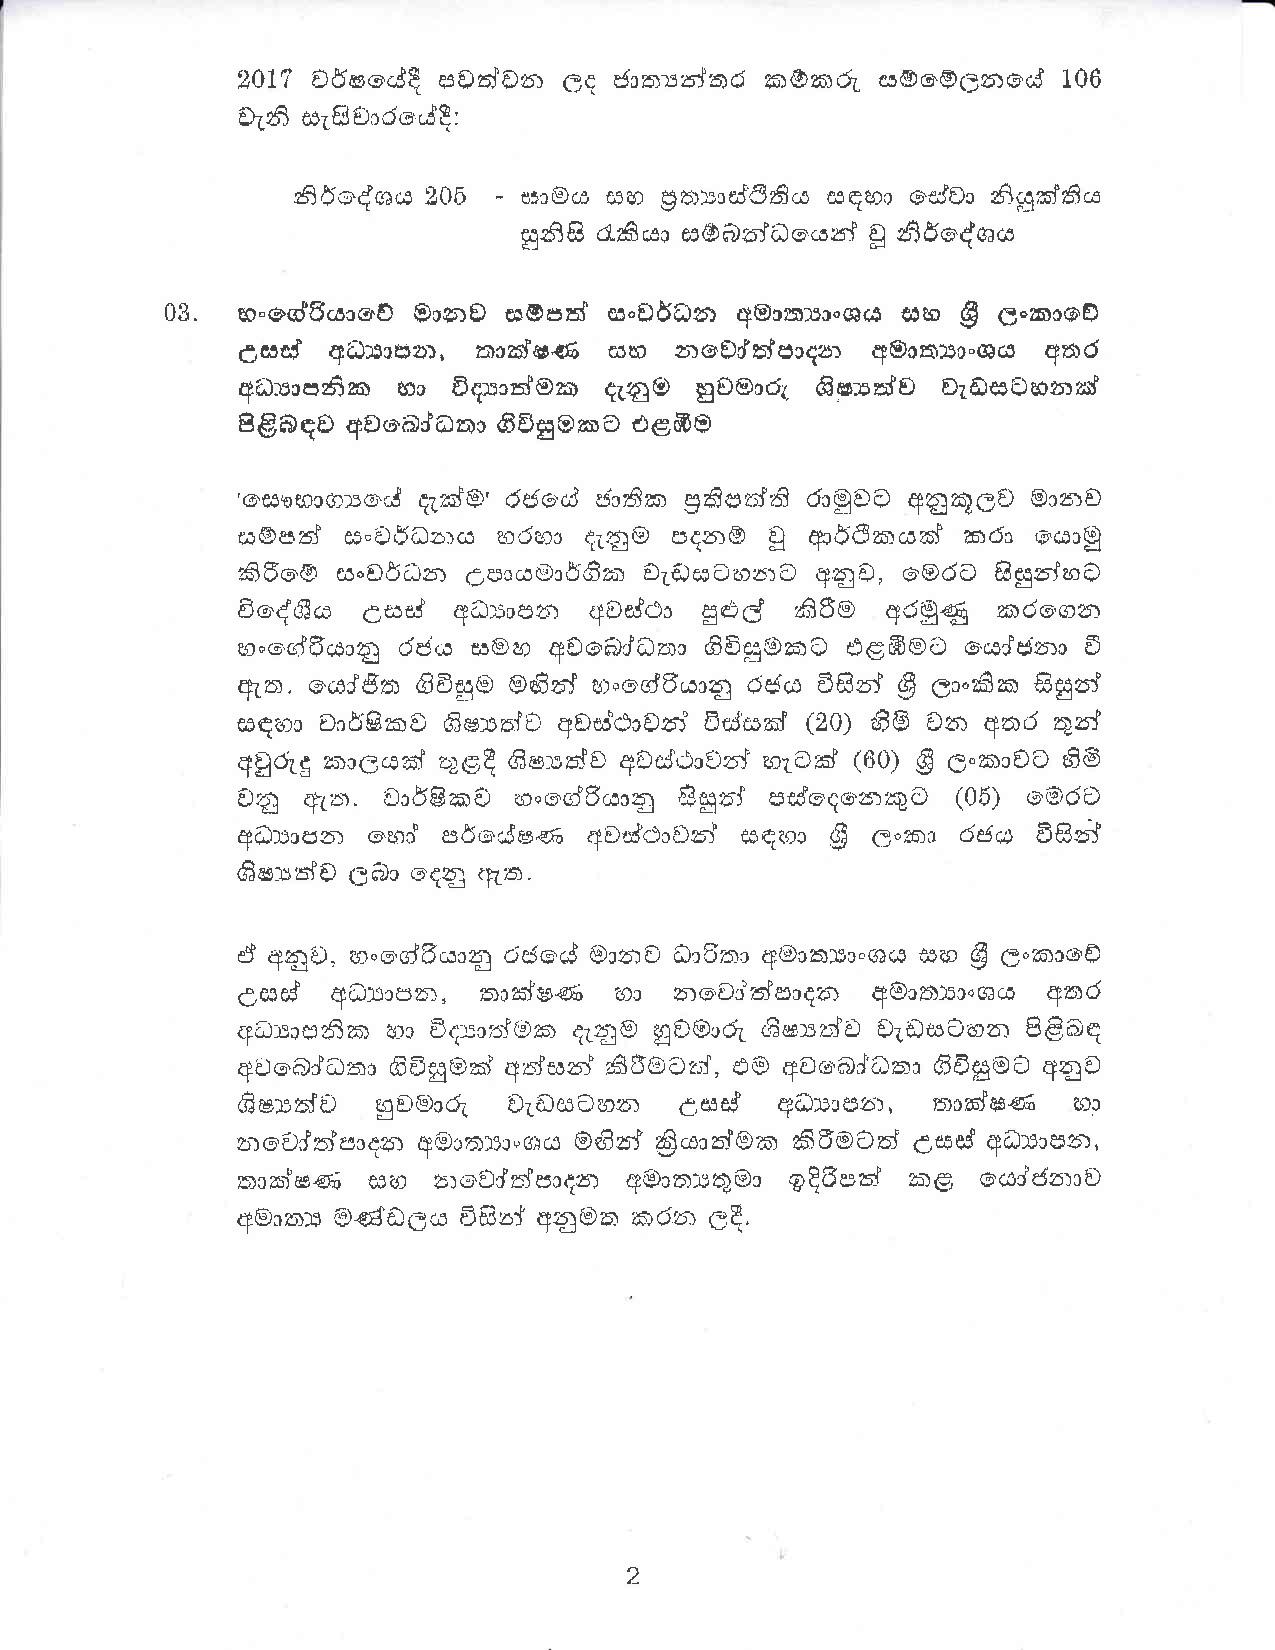 Cabinet Decision on 05.02.2020 page 002